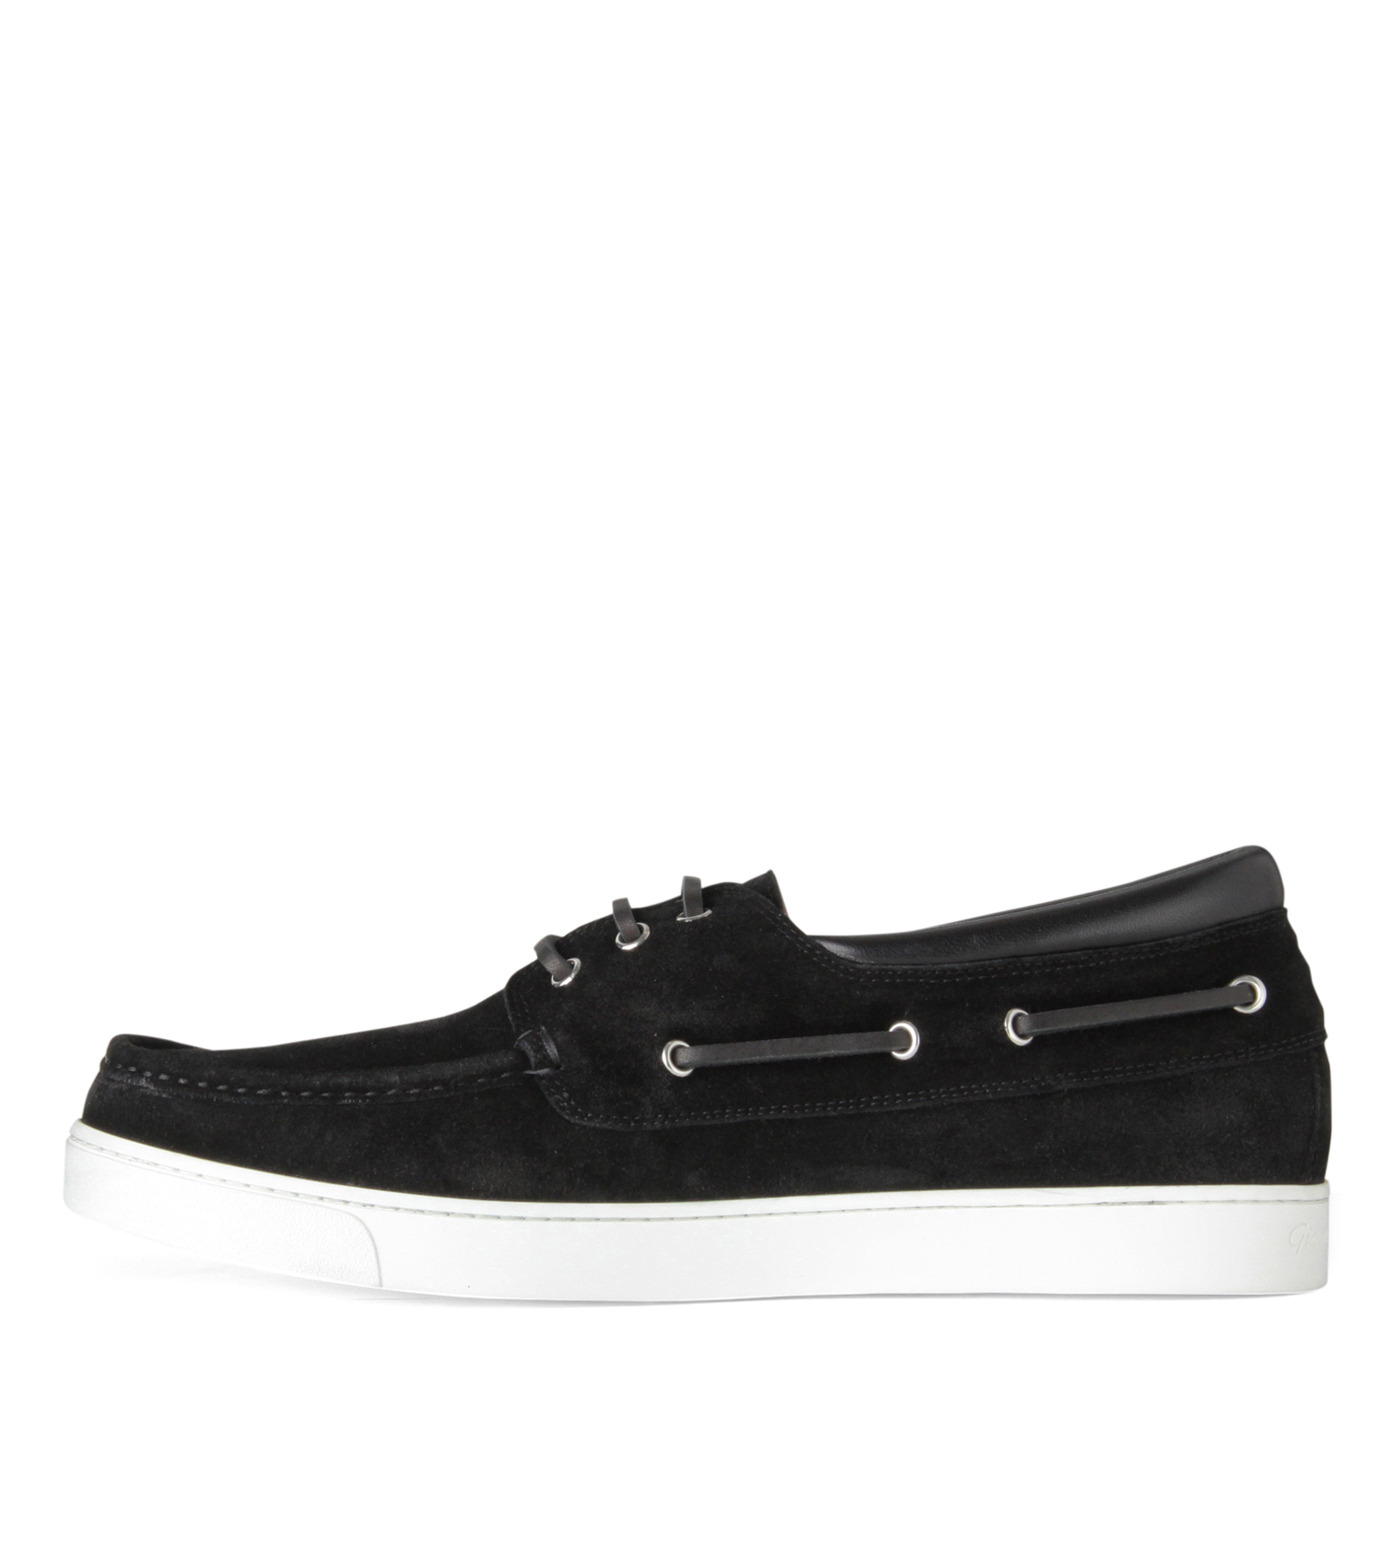 Gianvito Rossi(ジャンヴィト ロッシ)のMiddle Cut Deck Shoes-BLACK(シューズ/shoes)-S20966-13 拡大詳細画像2